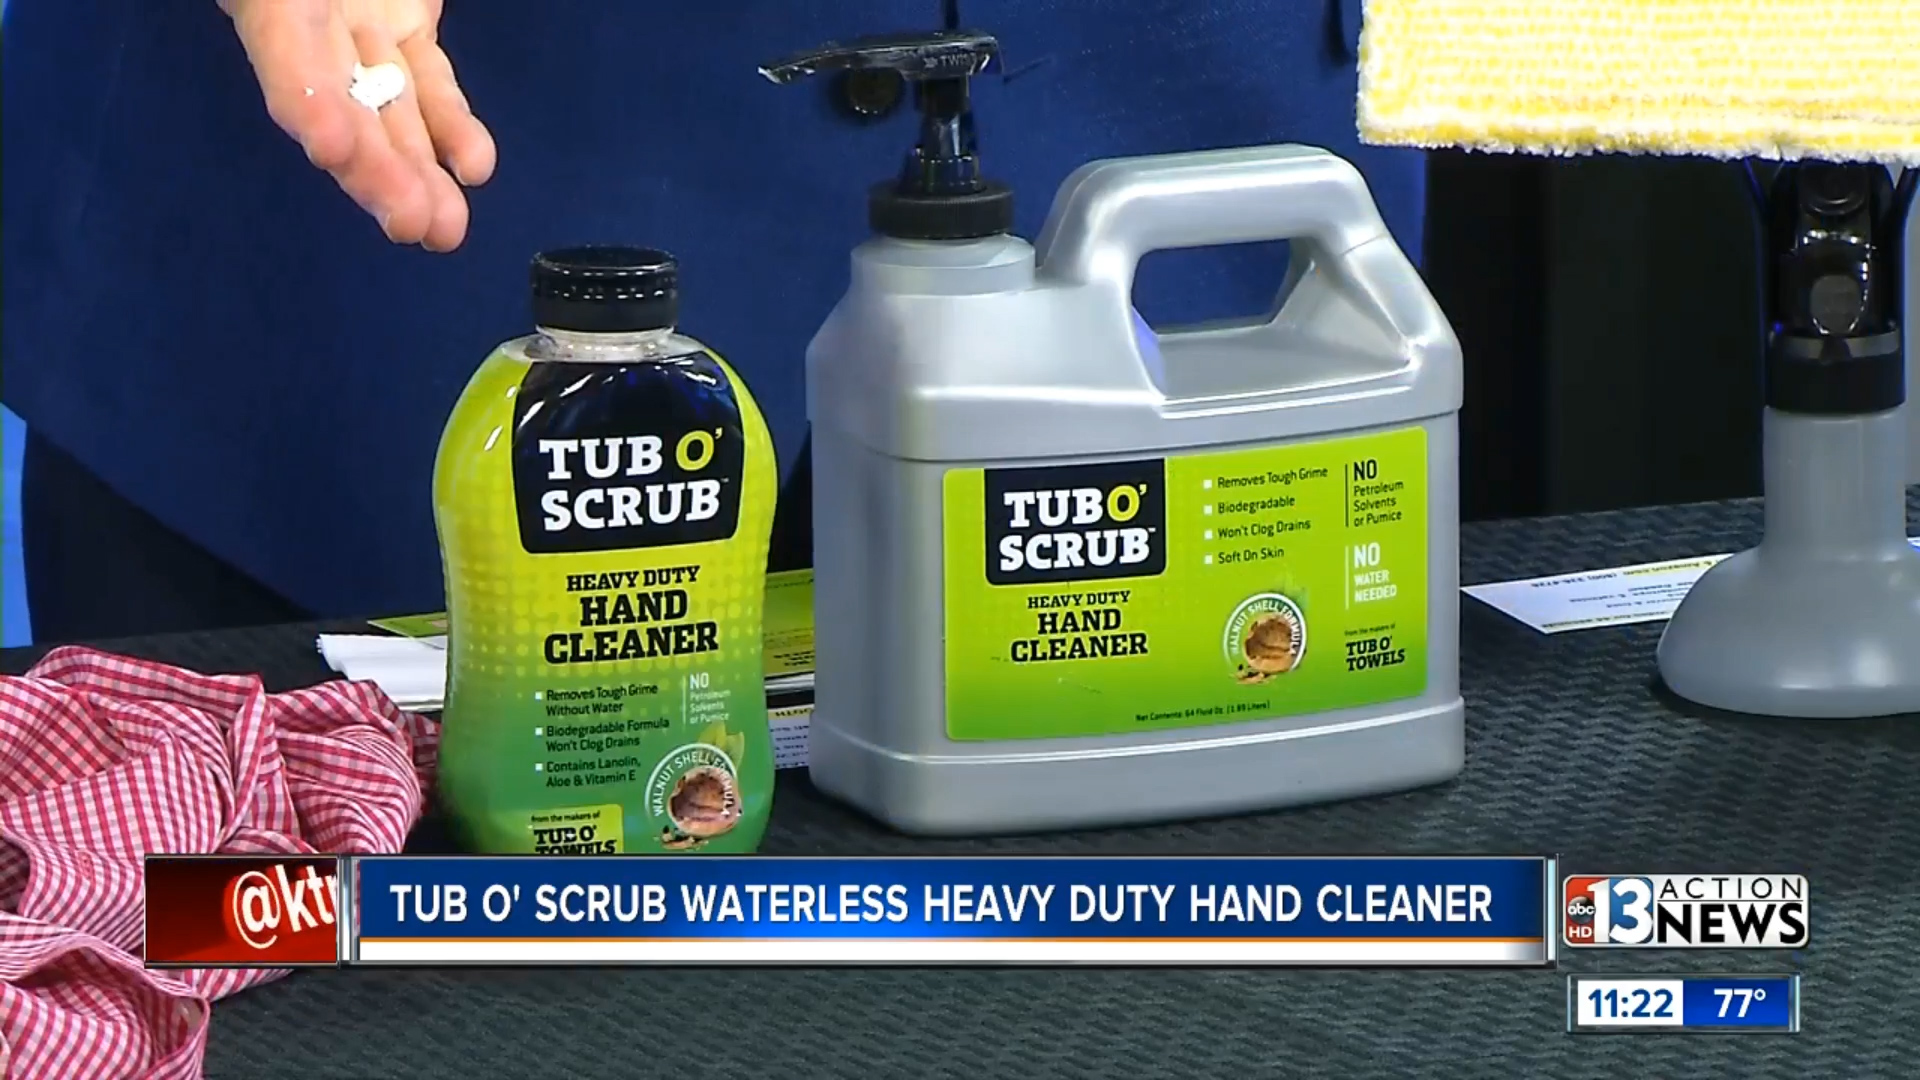 TUB O SCRUB WATERLESS HEAVY DUTY HAND CLEANER - Starting at $7.99Shop Now